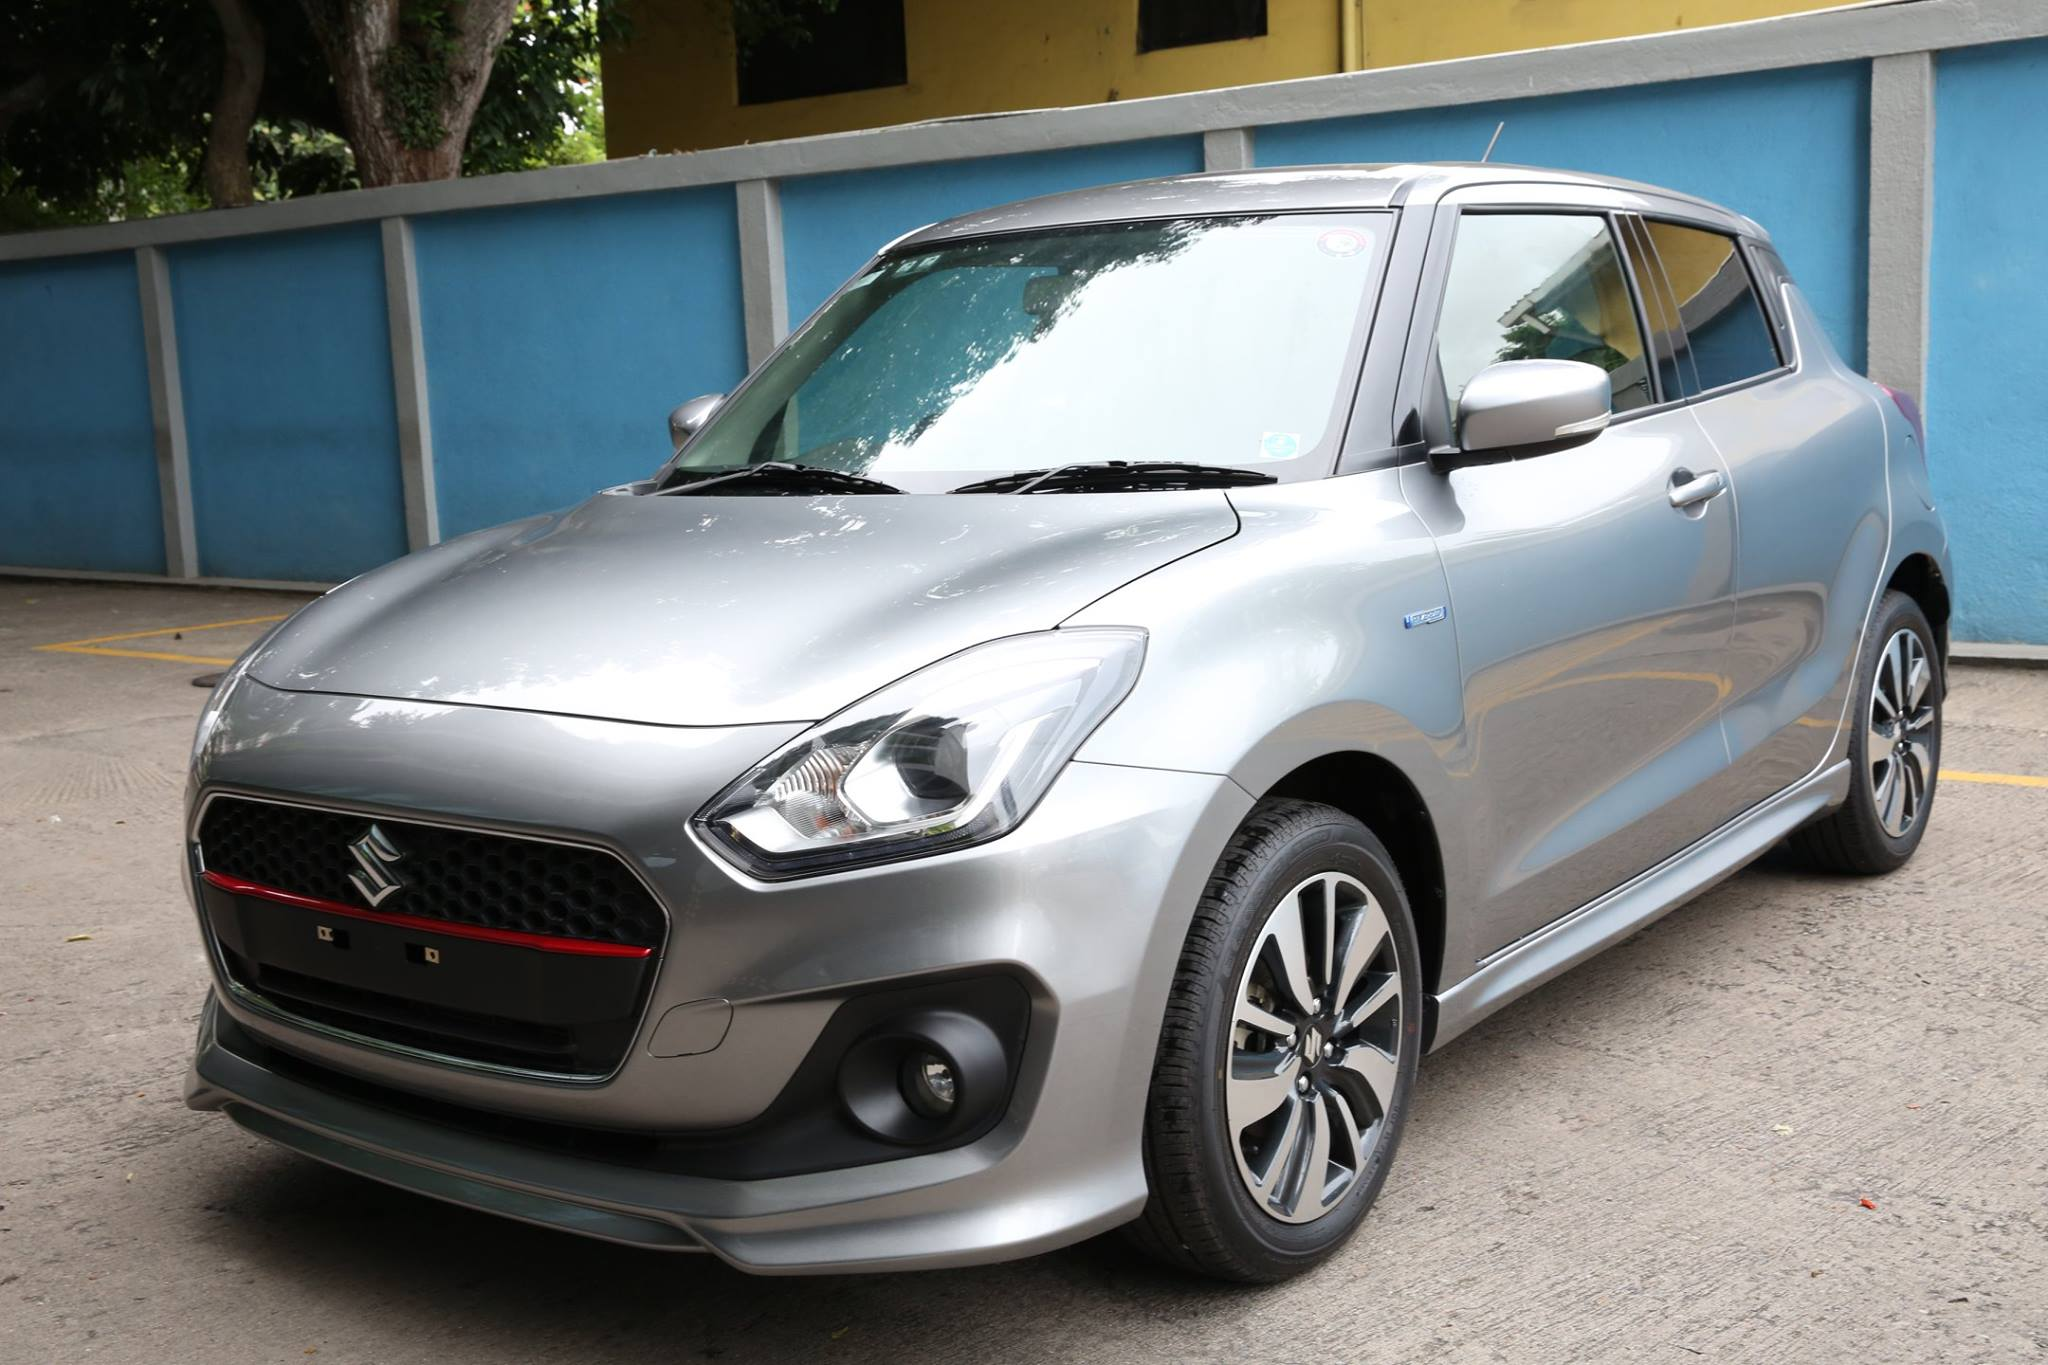 2018 Maruti Swift RS India Debut at Auto Expo 2018, Spotted!